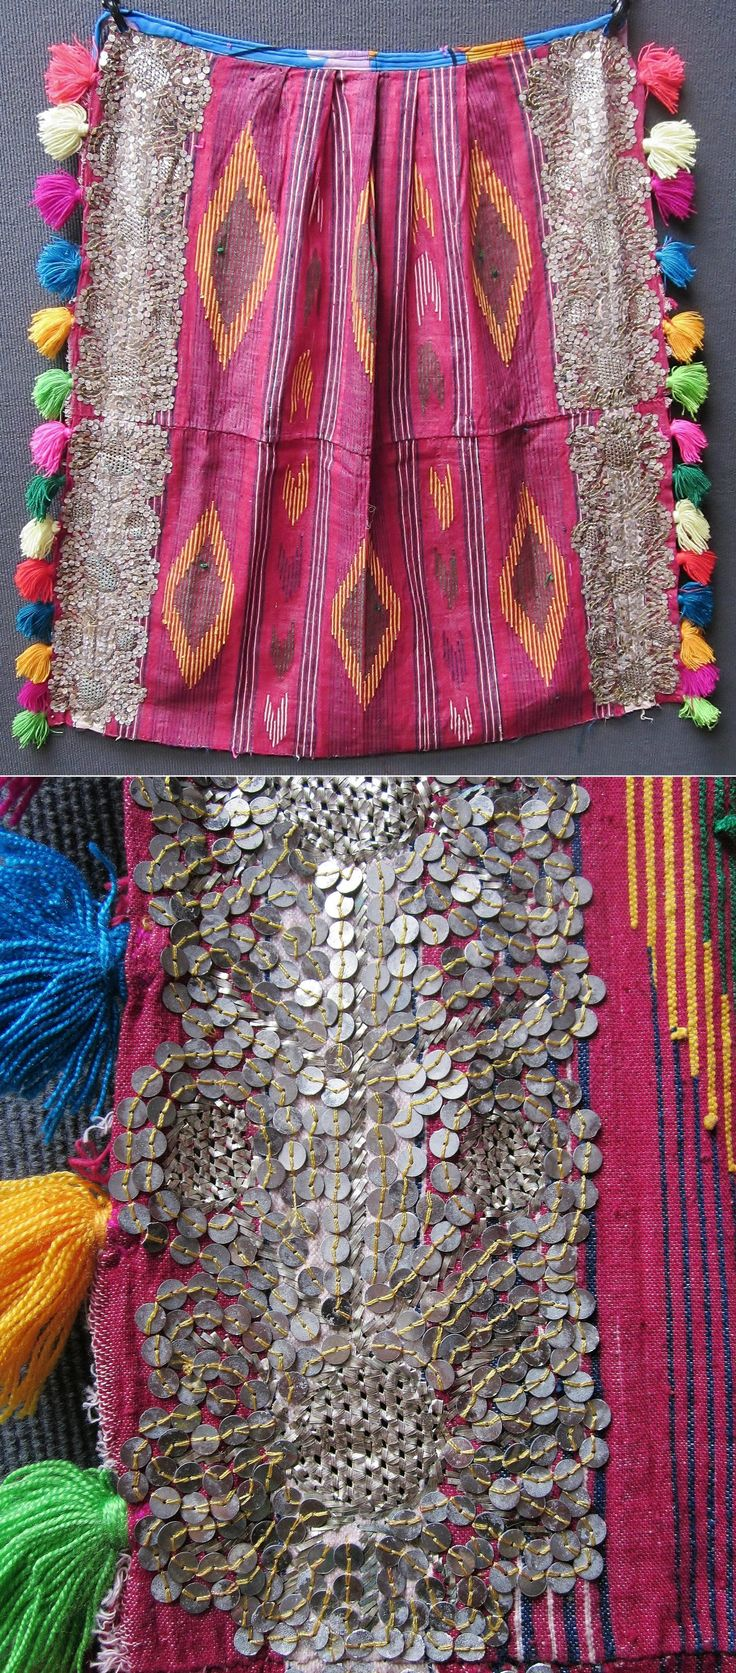 A bridal 'önlük' (women's apron, called 'önücek' locally) from the Sandıklı district (Afyon province). Mid-20th century. The fabric (cotton & orlon) was woven on small looms in some artisan workshops of Afyon town. The decoration with tassels, metal sequins and 'tel kırma' embroidery (motives obtained by sticking narrow metallic strips through the fabric and folding them) is the work of the bride and her female housemates. (Inv.nr. önL085 - Kavak Costume Collection - Antwerpen/Belgium).